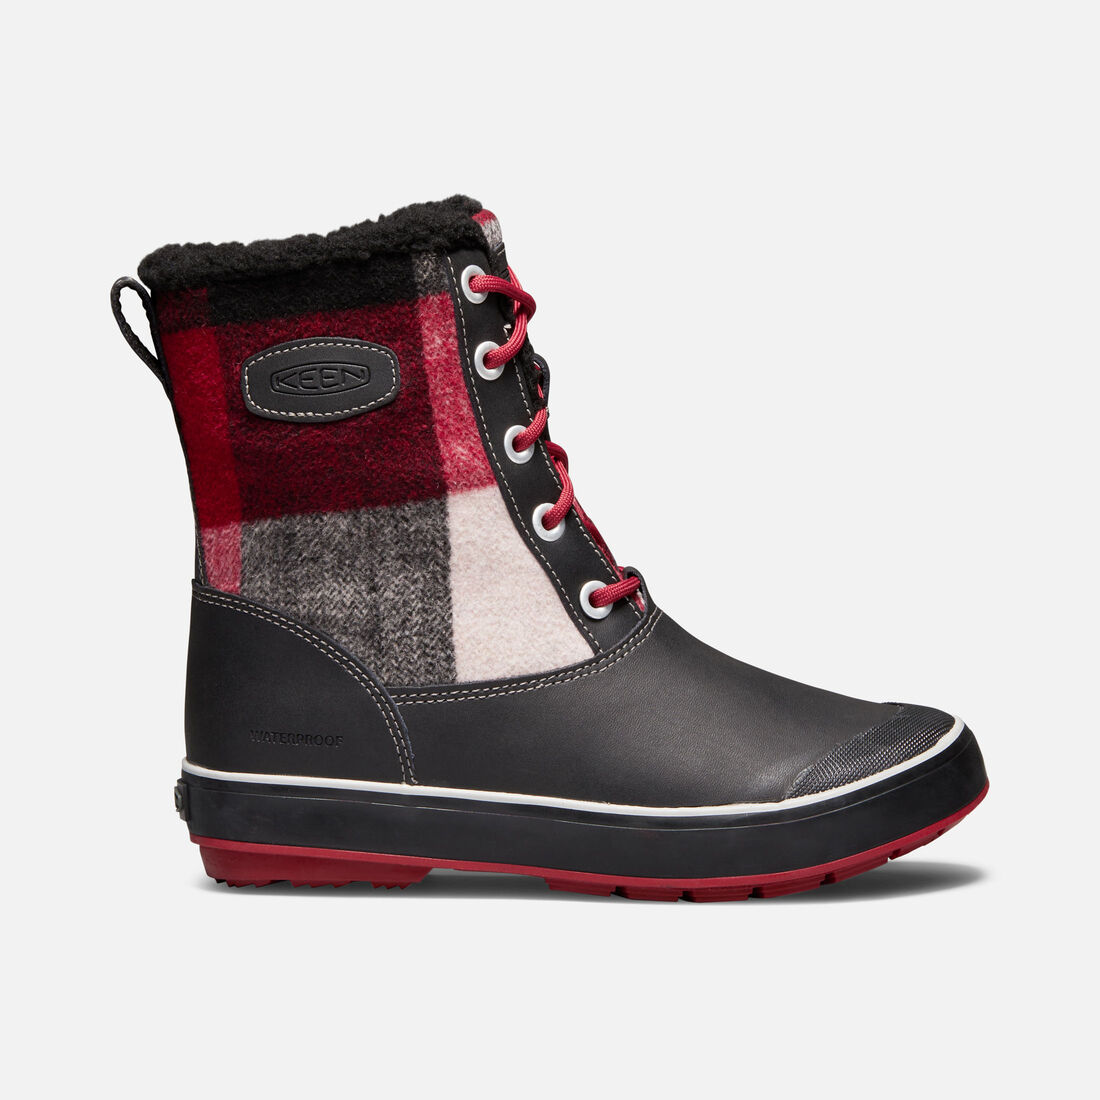 Women's Elsa Boot in Black/Red Dahlia - large view.